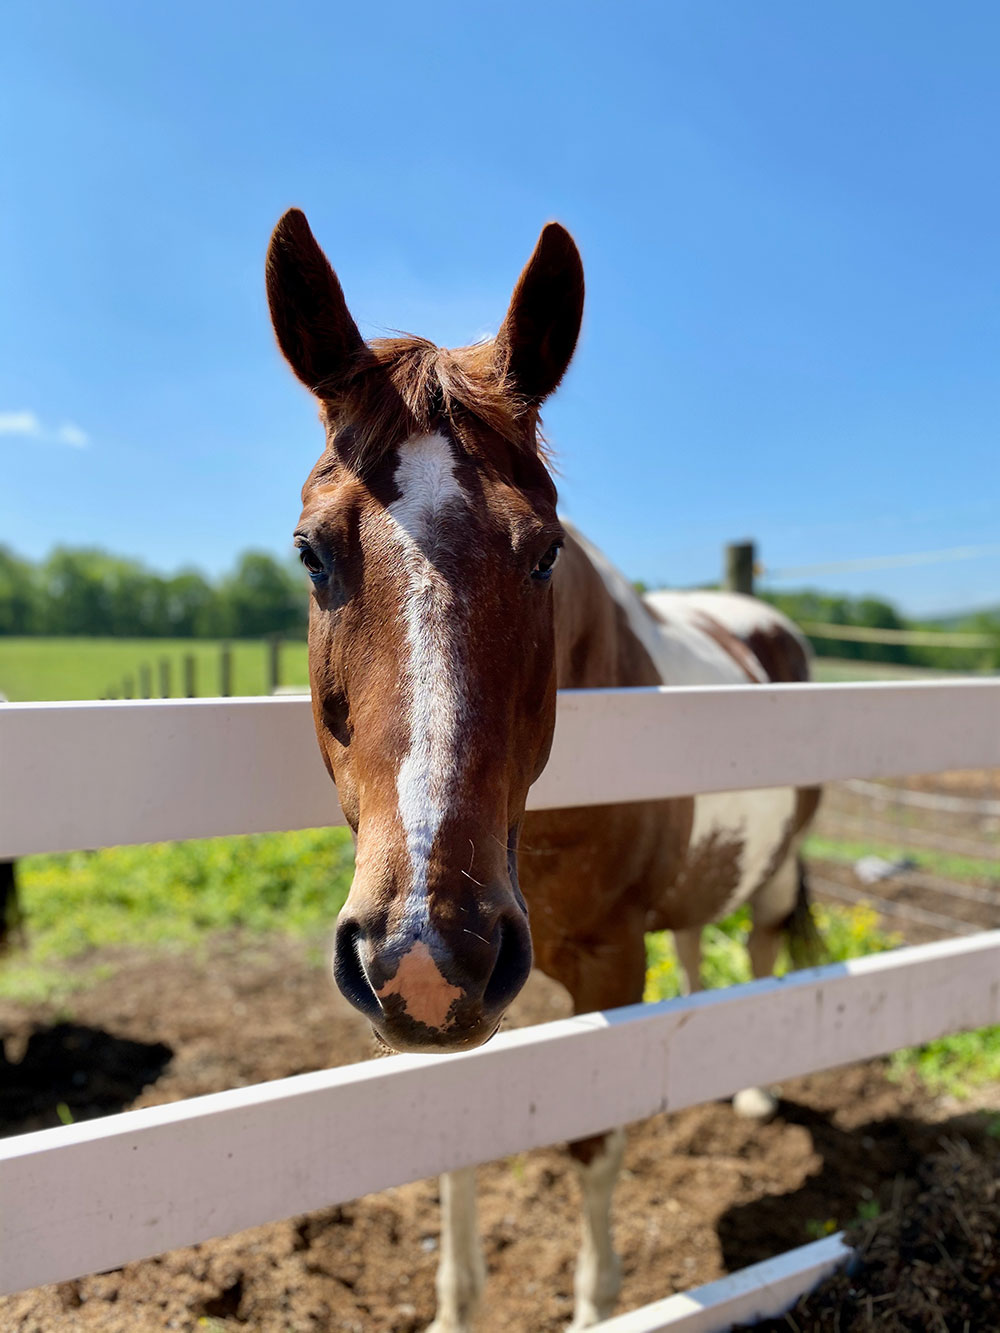 Close Up of Horse at Fence at Land of Little Horses Animal Theme Park